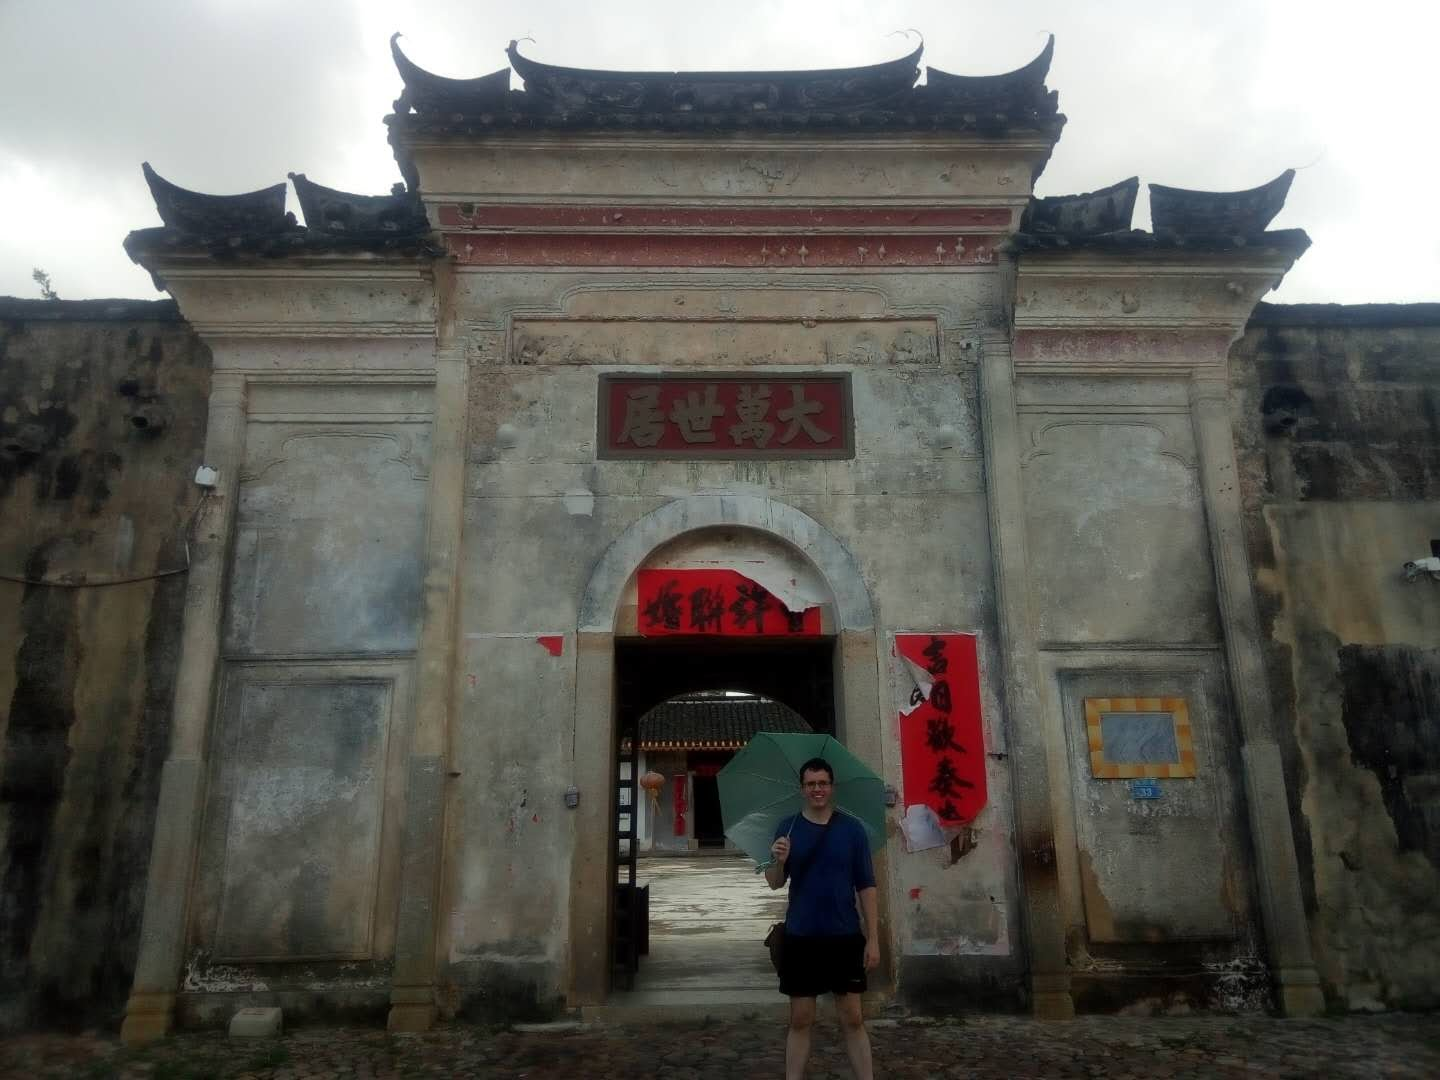 Enterance to a Hakka Village near Shenzhen